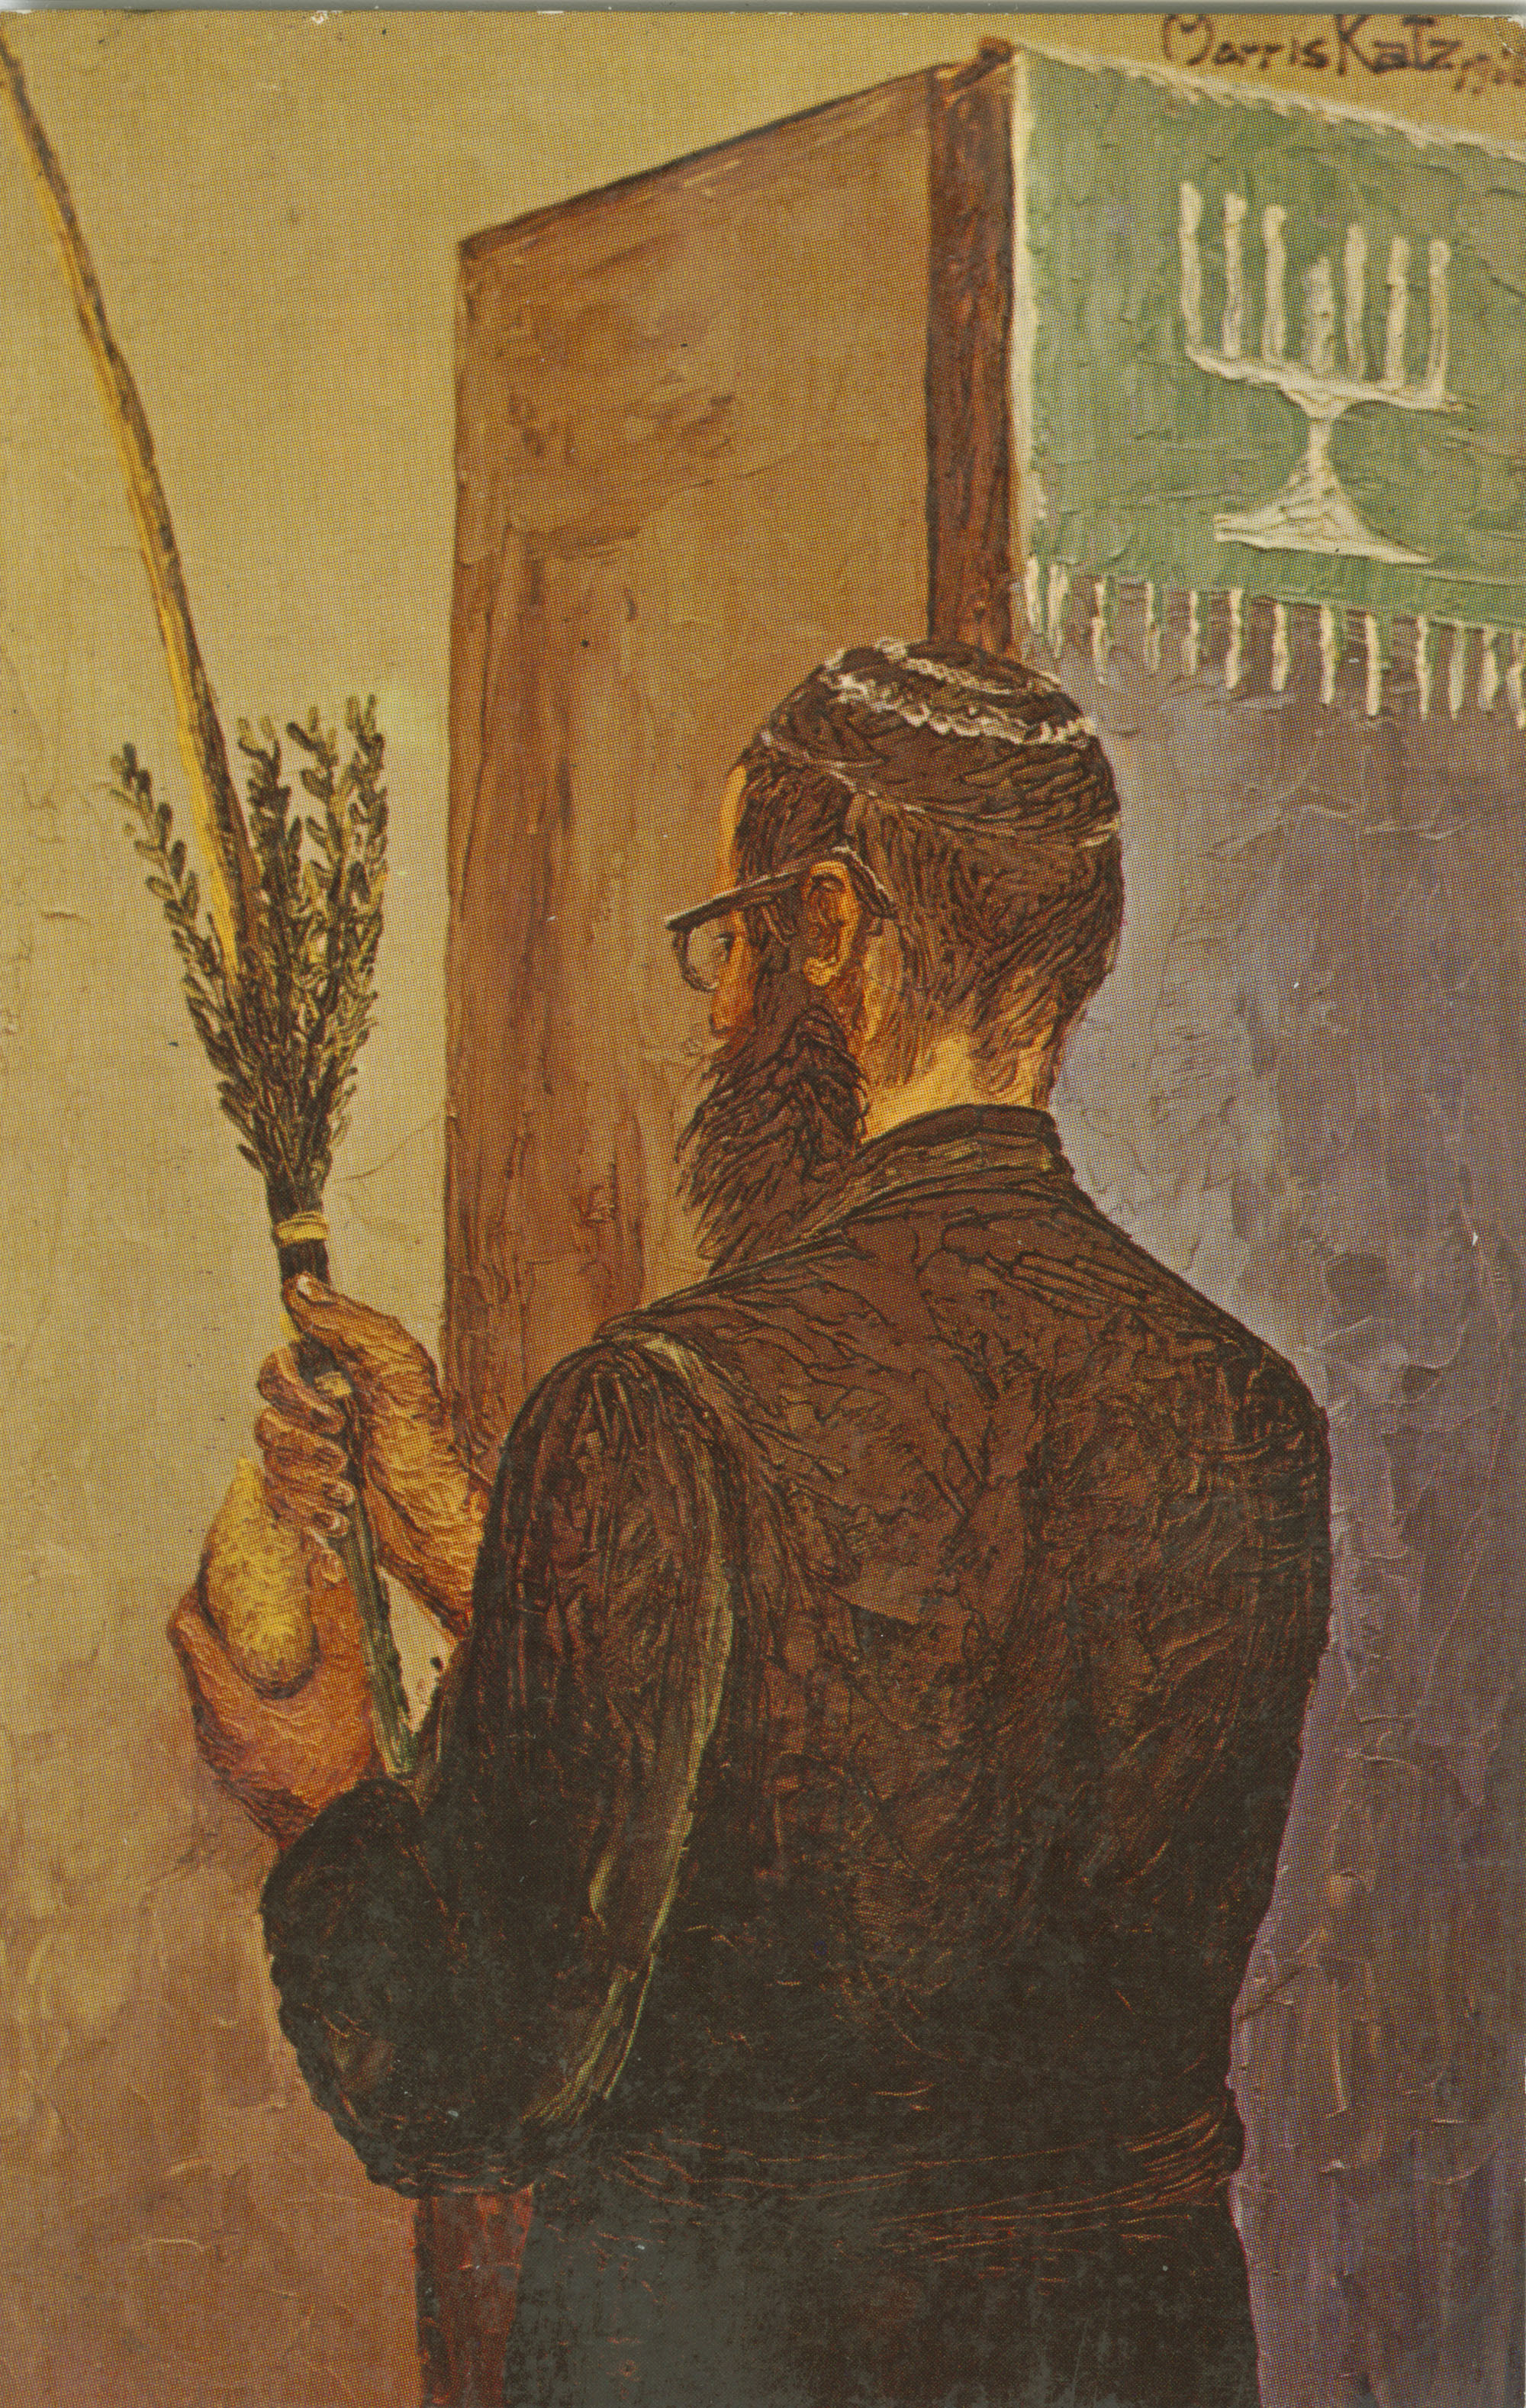 The Chusid with Esrog